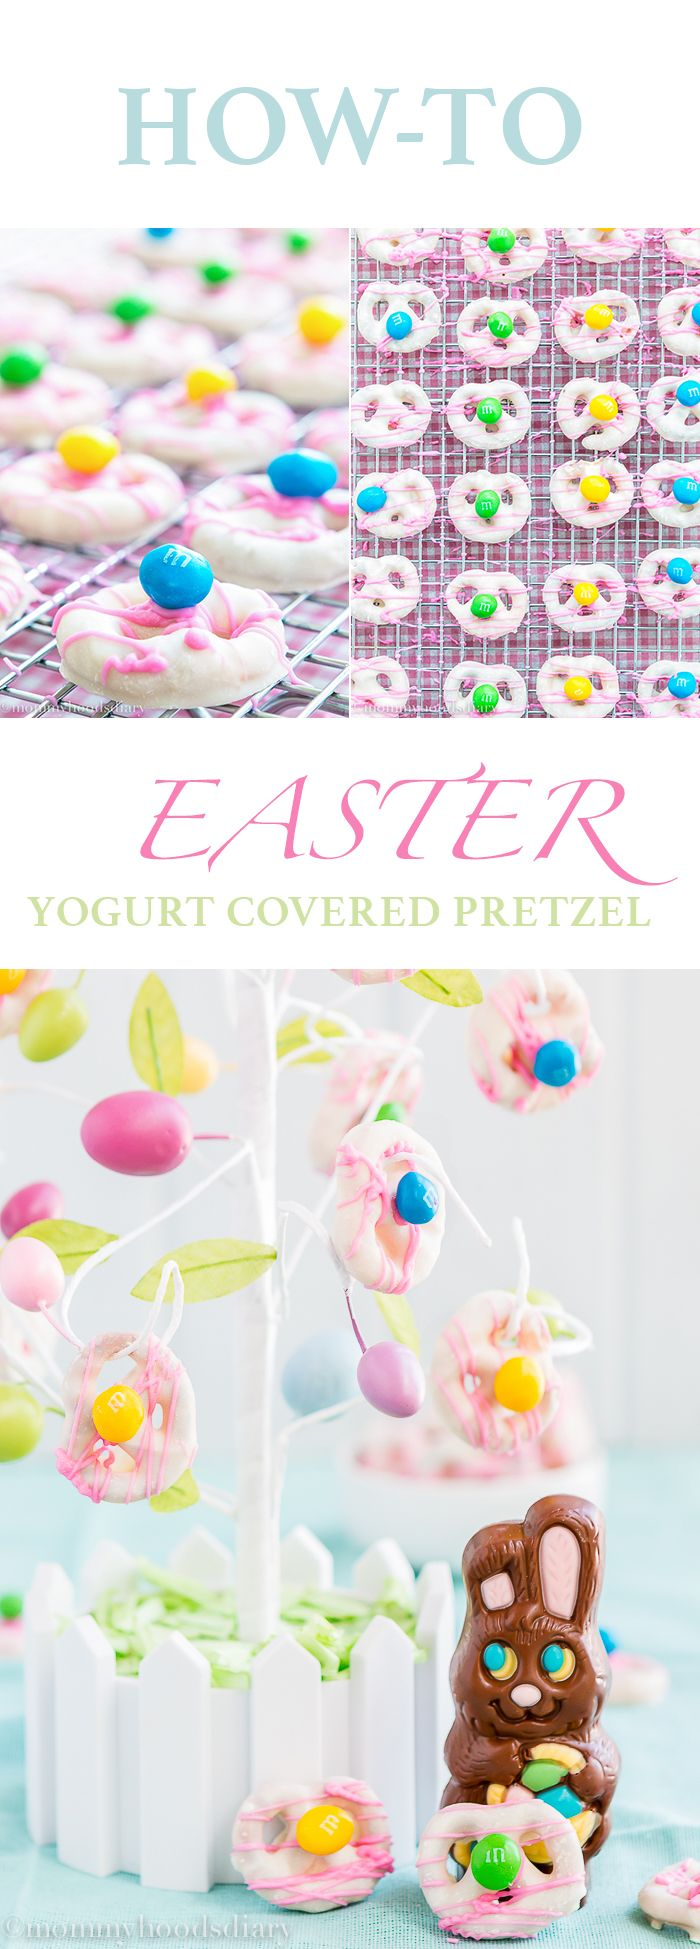 How To Make Easter Yogurt Covered Pretzels | Mommyhood's Diary